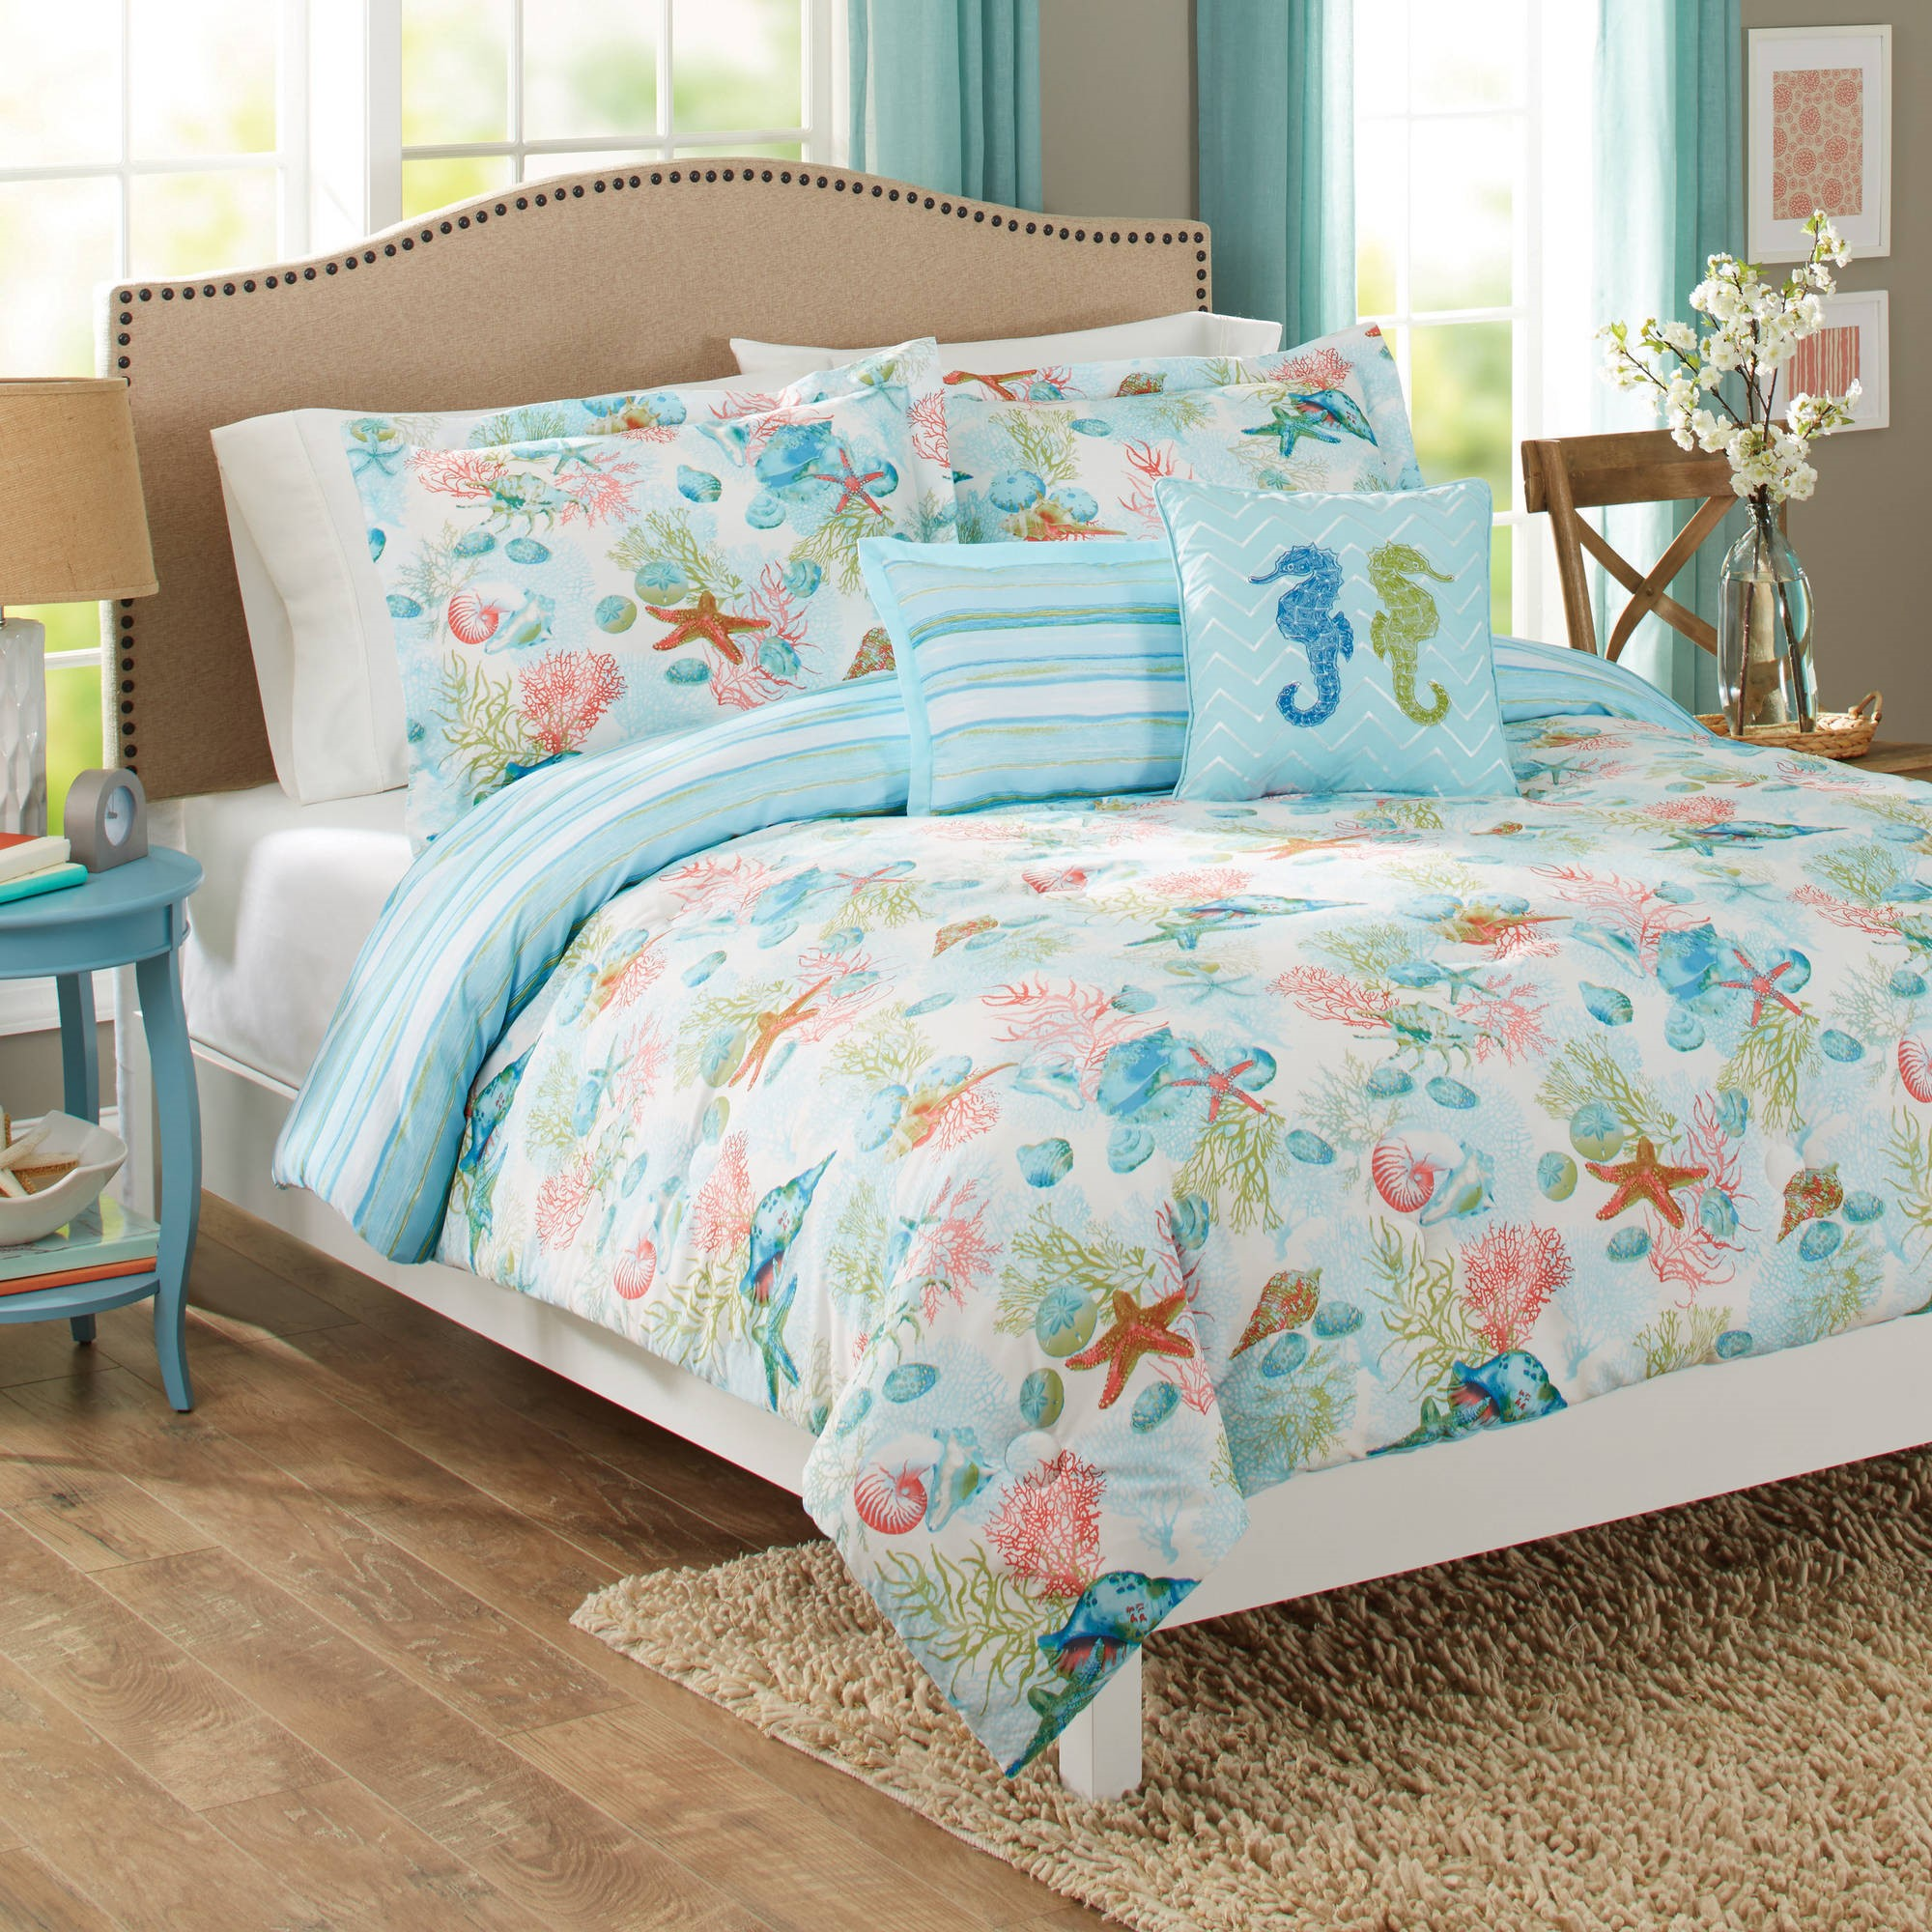 Click here to buy Better Homes and Gardens Beach Day 5-Piece Comforter Set, Peach by Peking Handicraft.